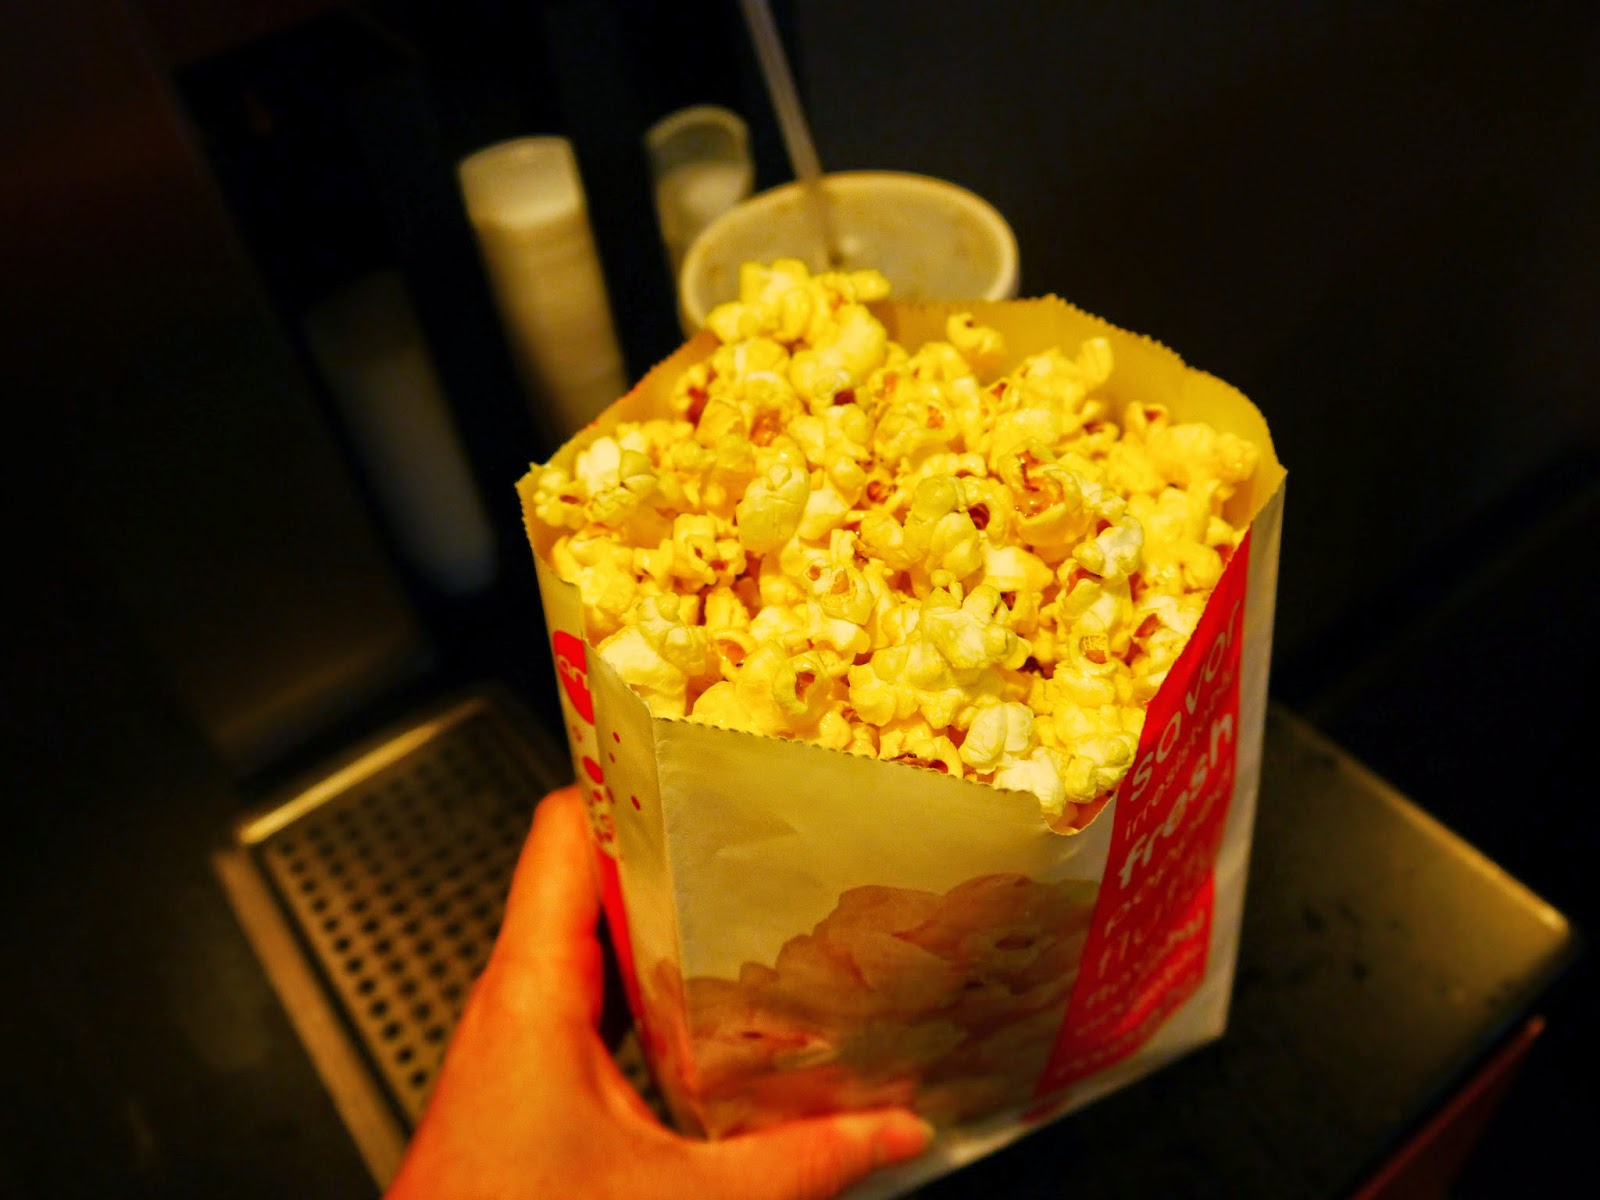 how to use popcorn machine with butter